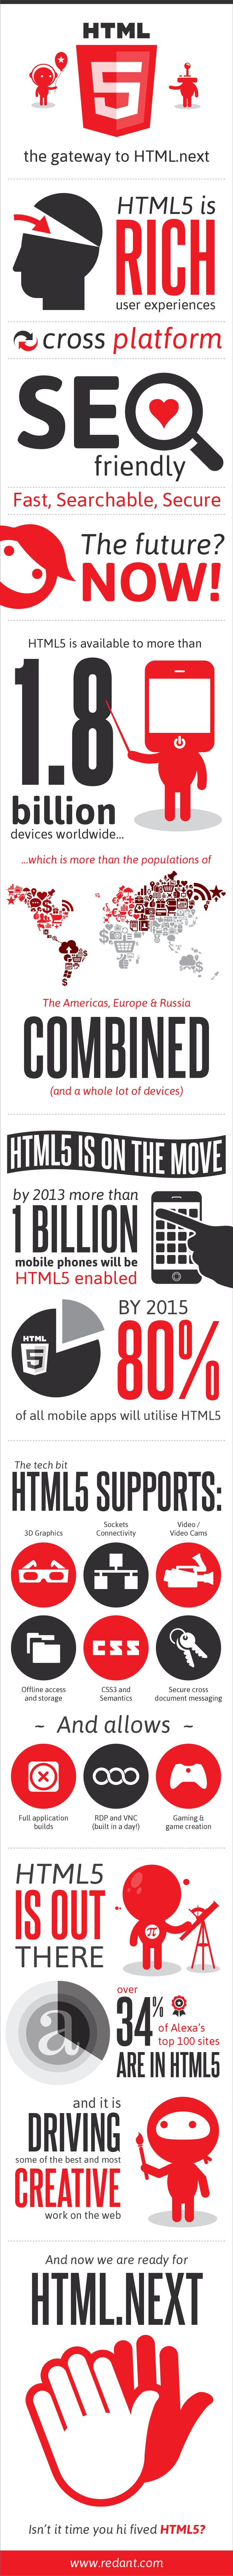 HTML5 Infographic, animated video here:  http://www.redant.com/articles/html-5-the-gateway-to-htmlnext/